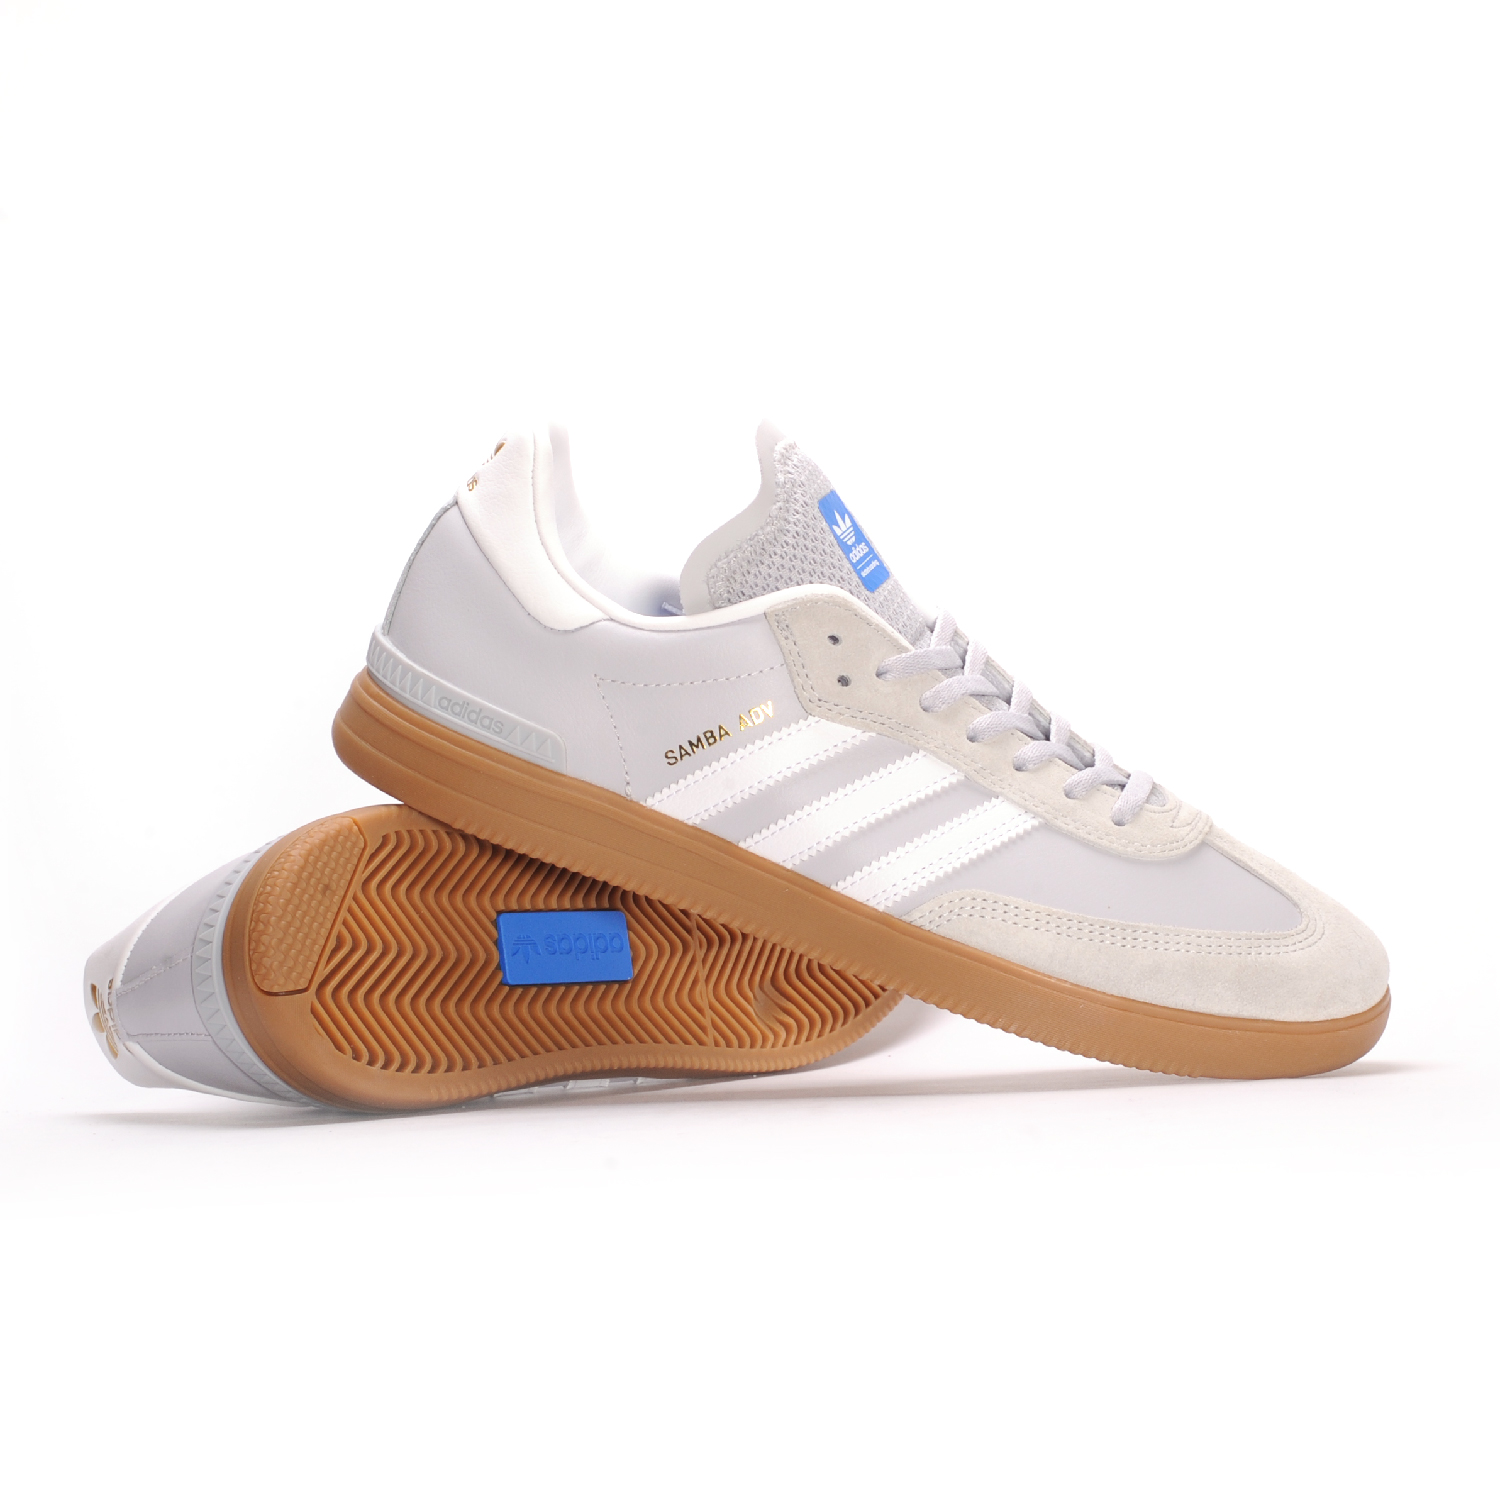 adidas samba adv lgh solid grey white blue bird men 39 s. Black Bedroom Furniture Sets. Home Design Ideas